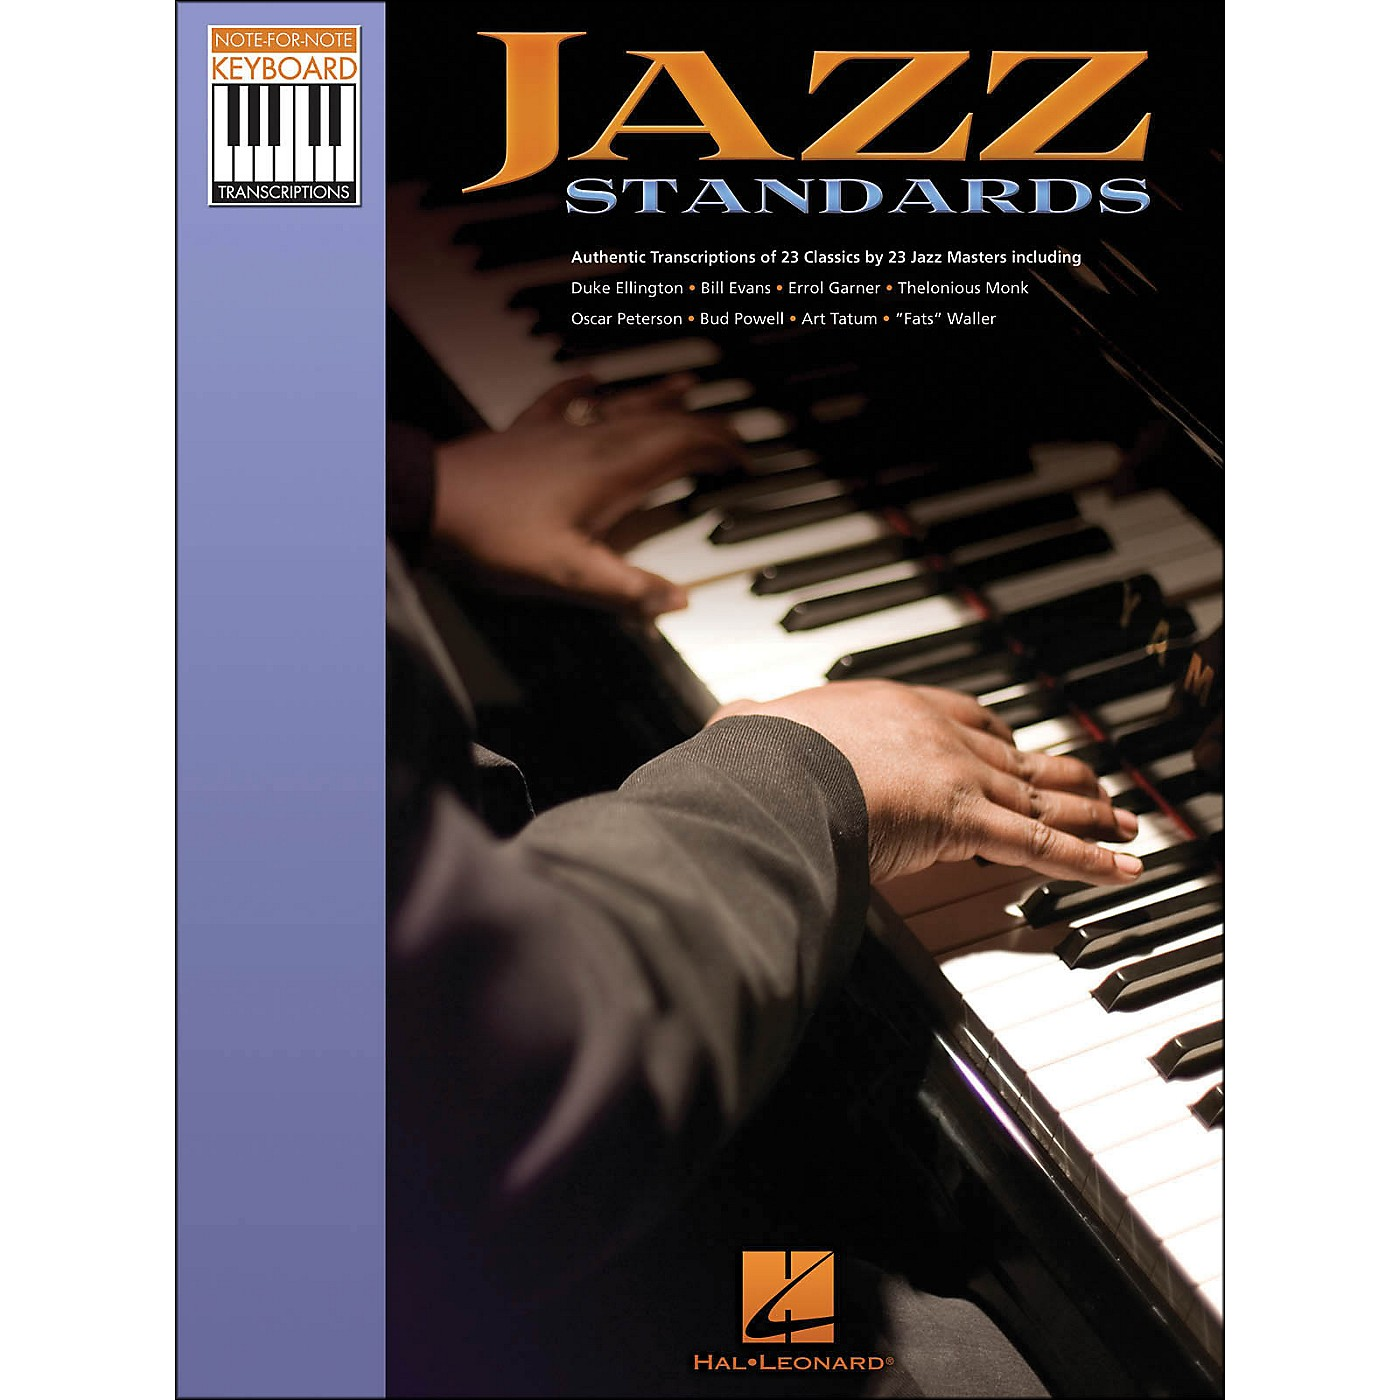 Hal Leonard Jazz Standards Note for Note Piano Transcriptions thumbnail